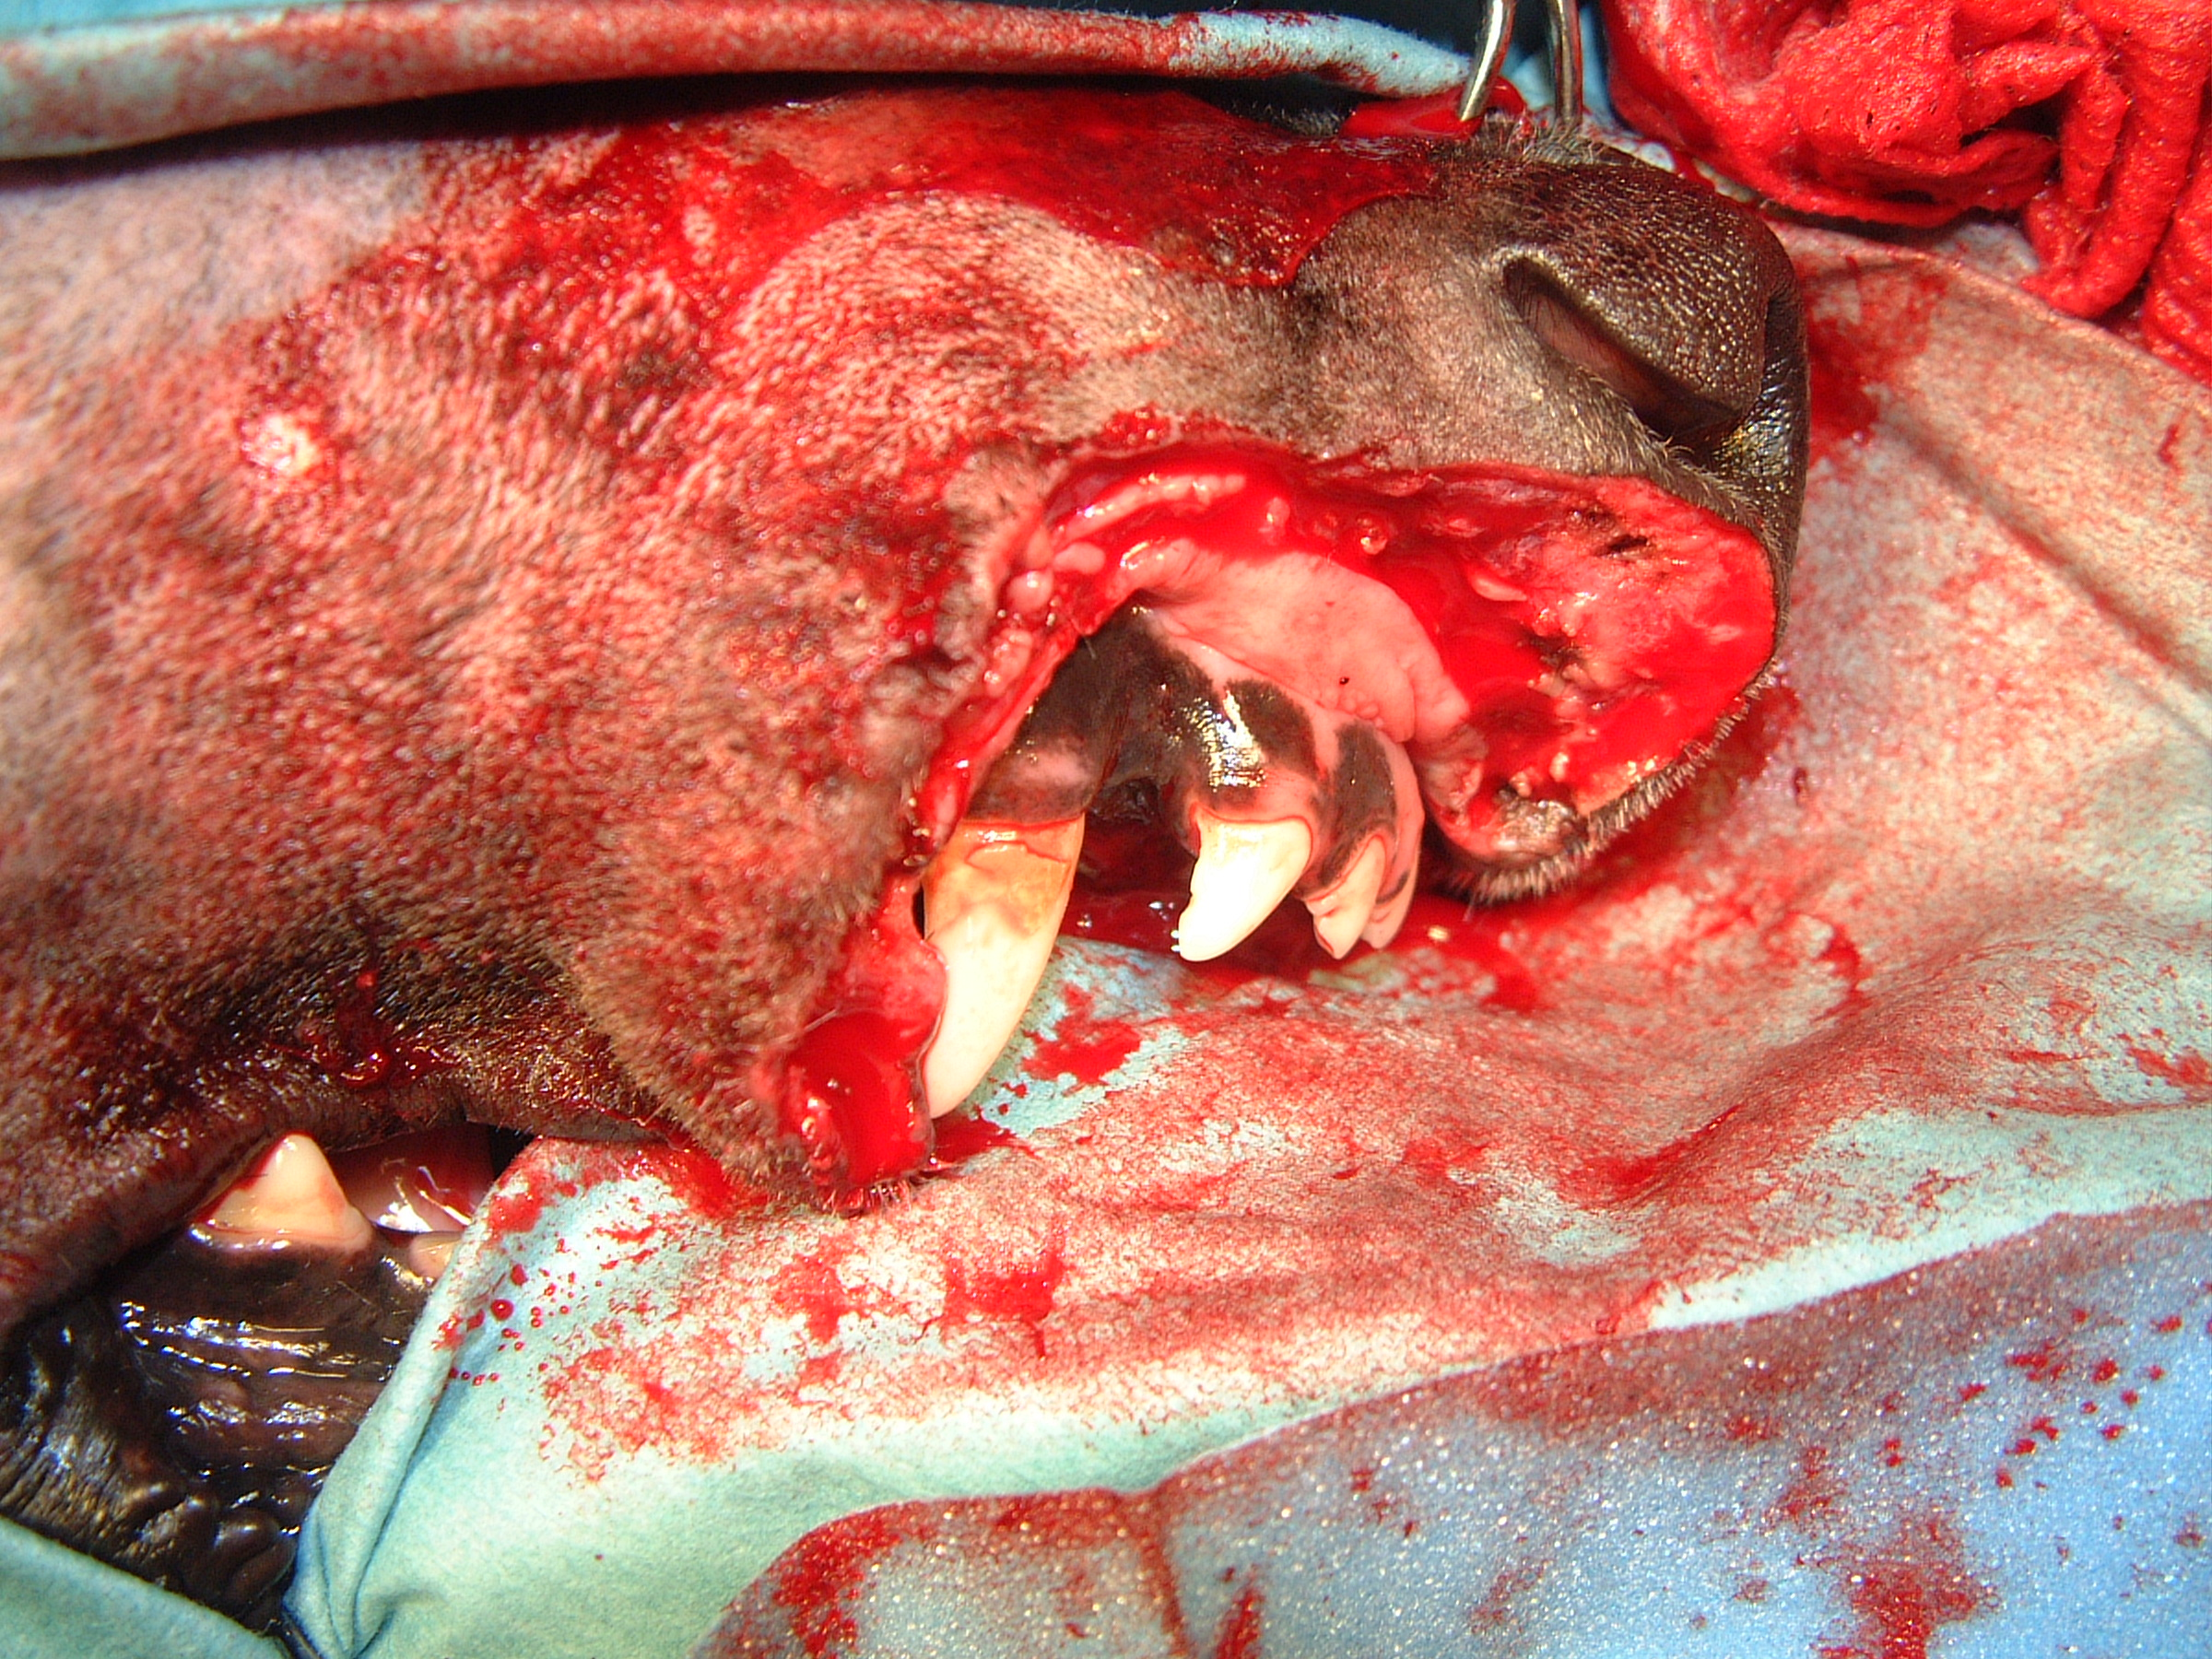 Intraoperative - Post Resection